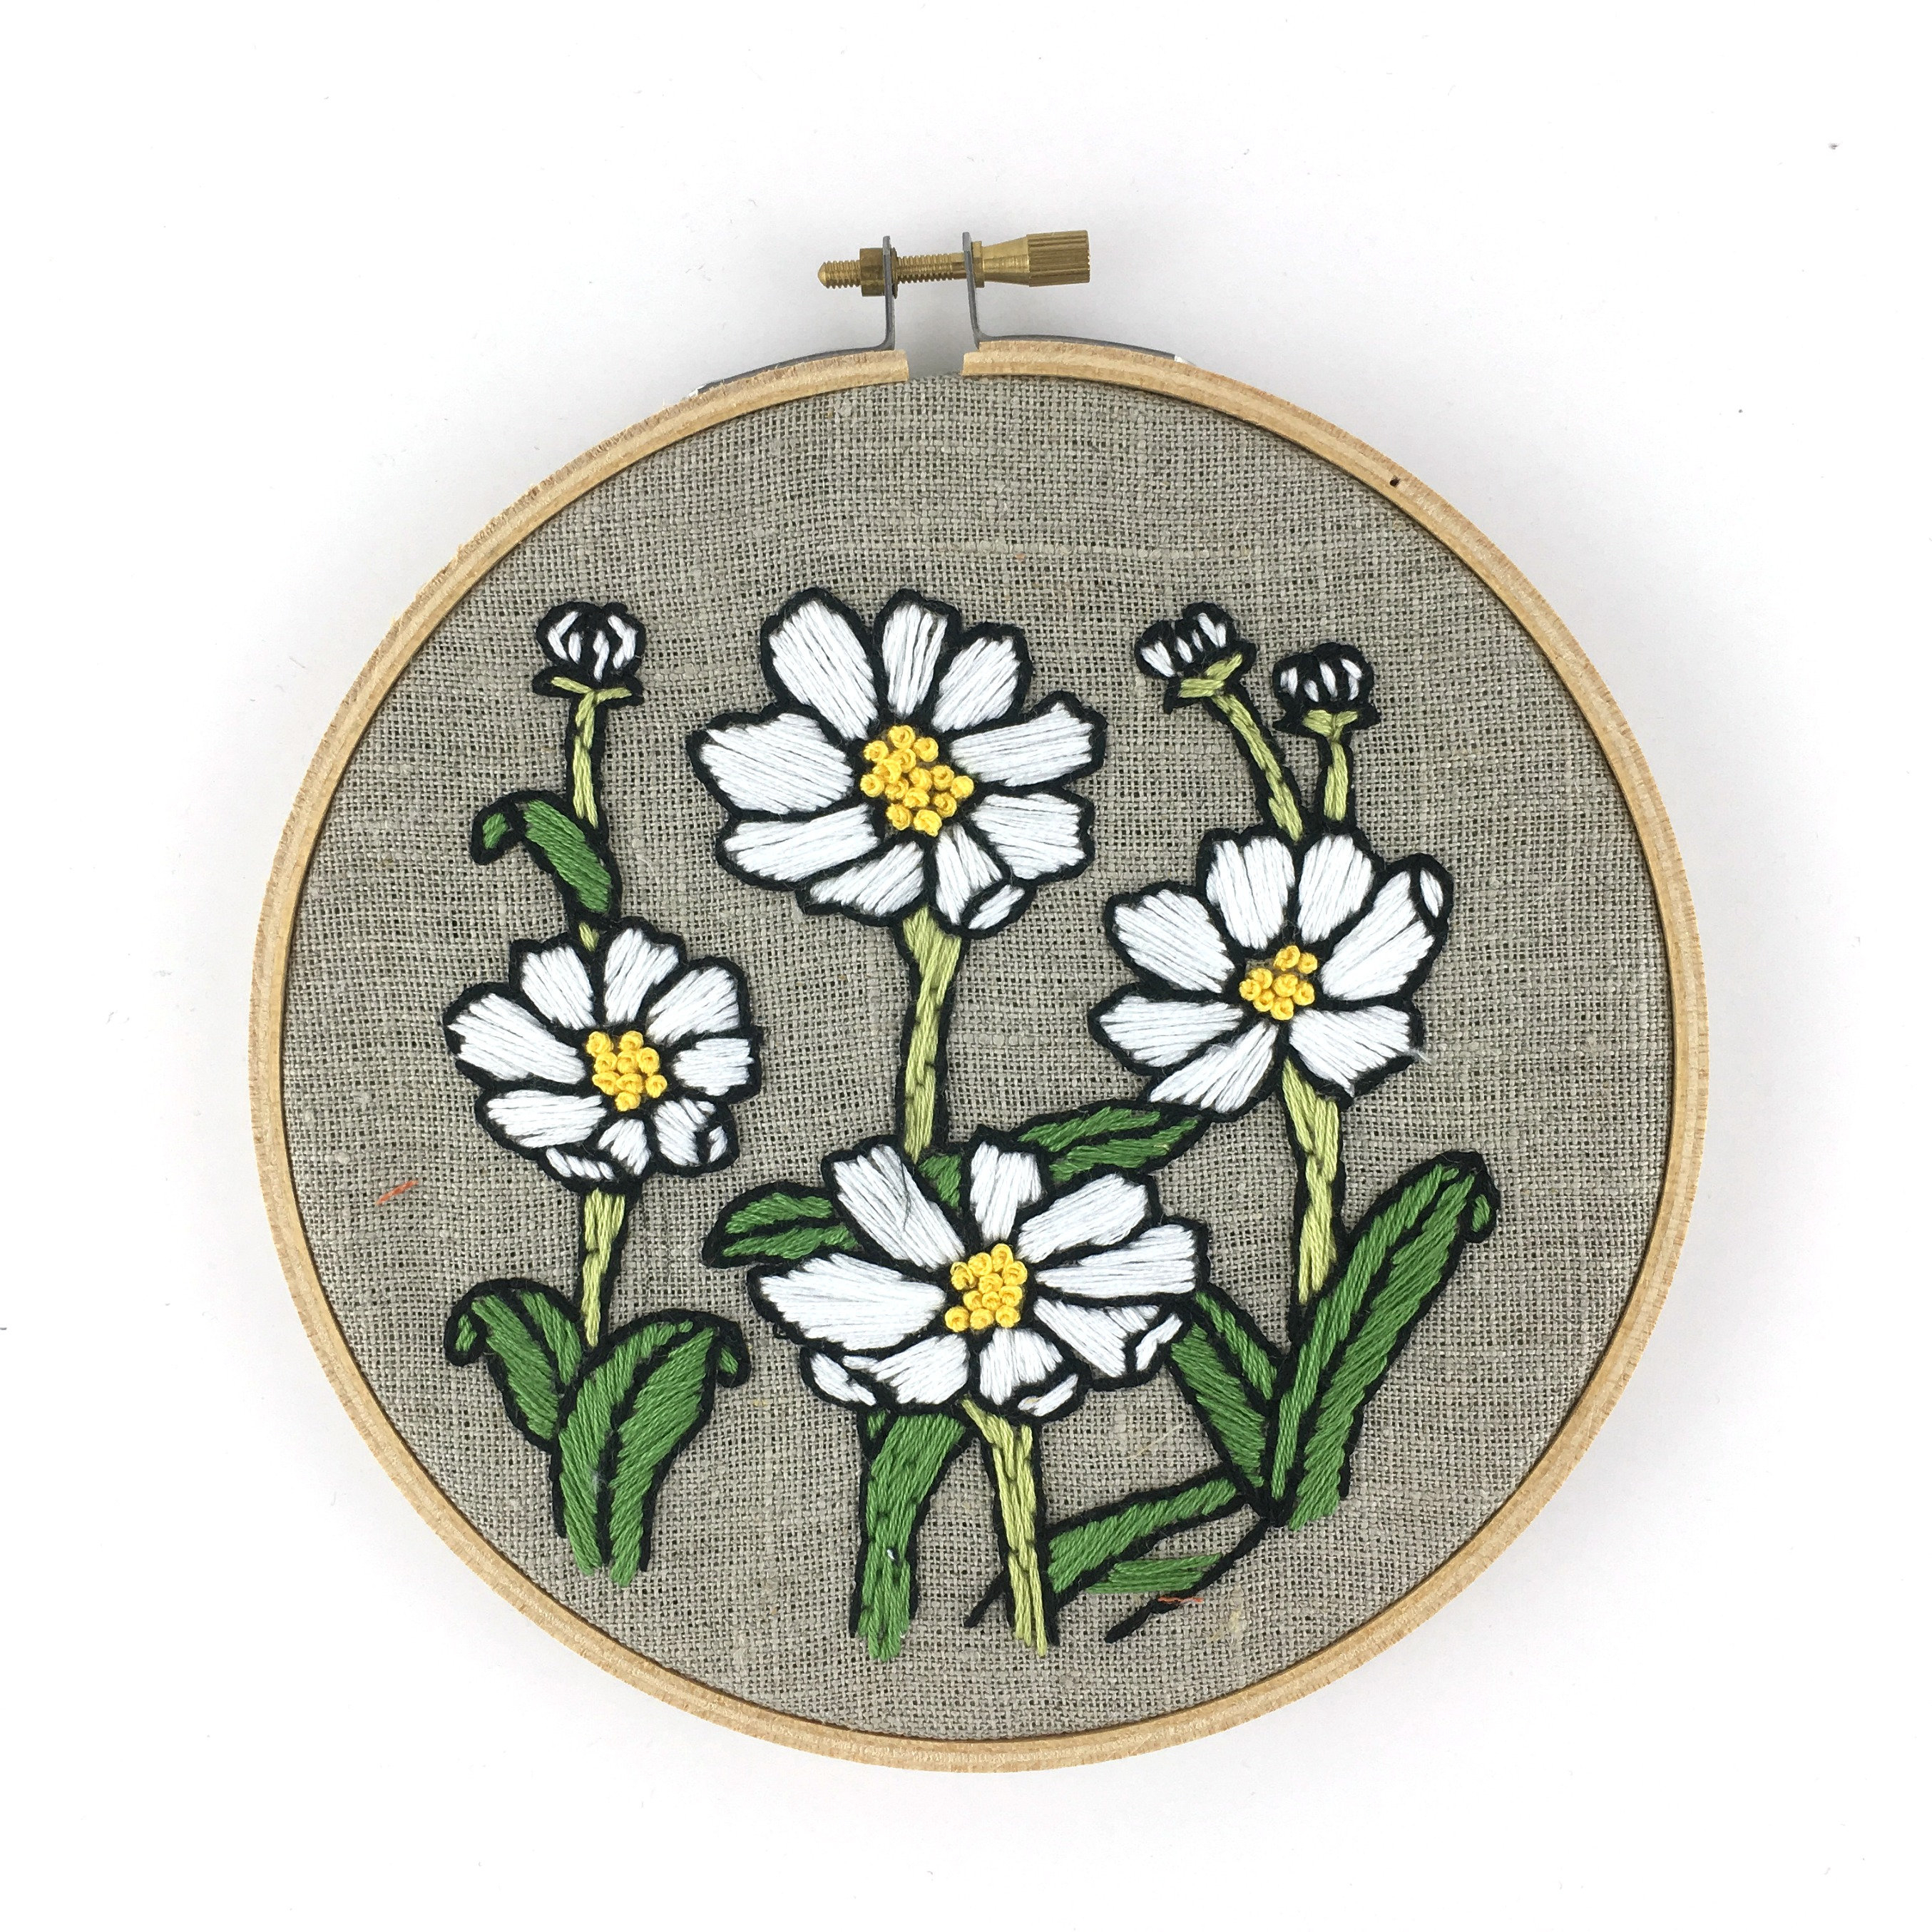 How To Read Embroidery Patterns Daisies Embroidery Kit Beginner Floral Embroidery Floral